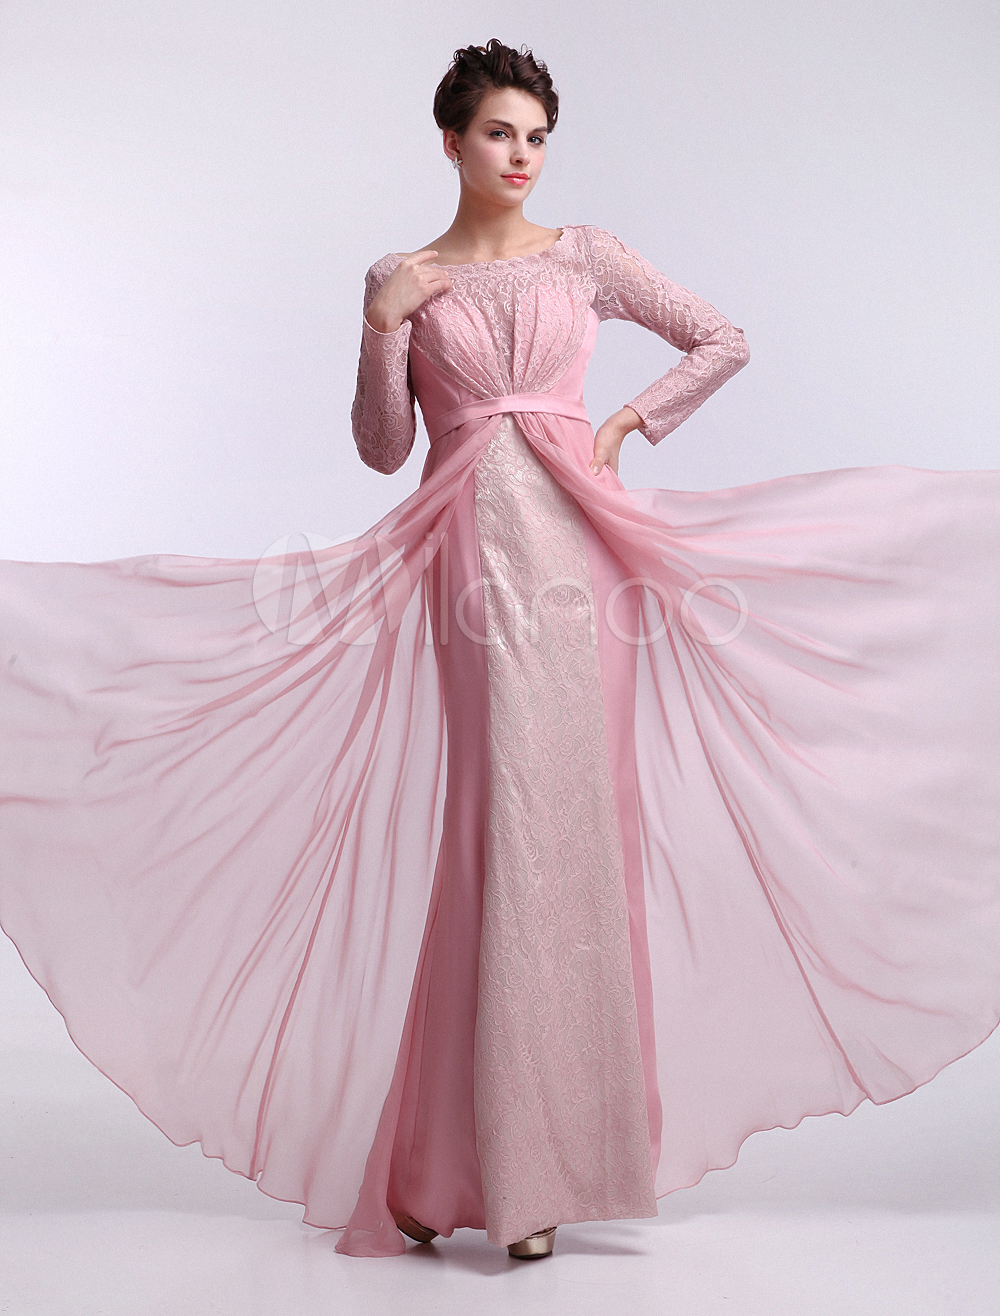 A-line Blushing Pink Floor-Length Lace Chiffon Evening Dress with Scoop Neck Long Sleeves  Milanoo